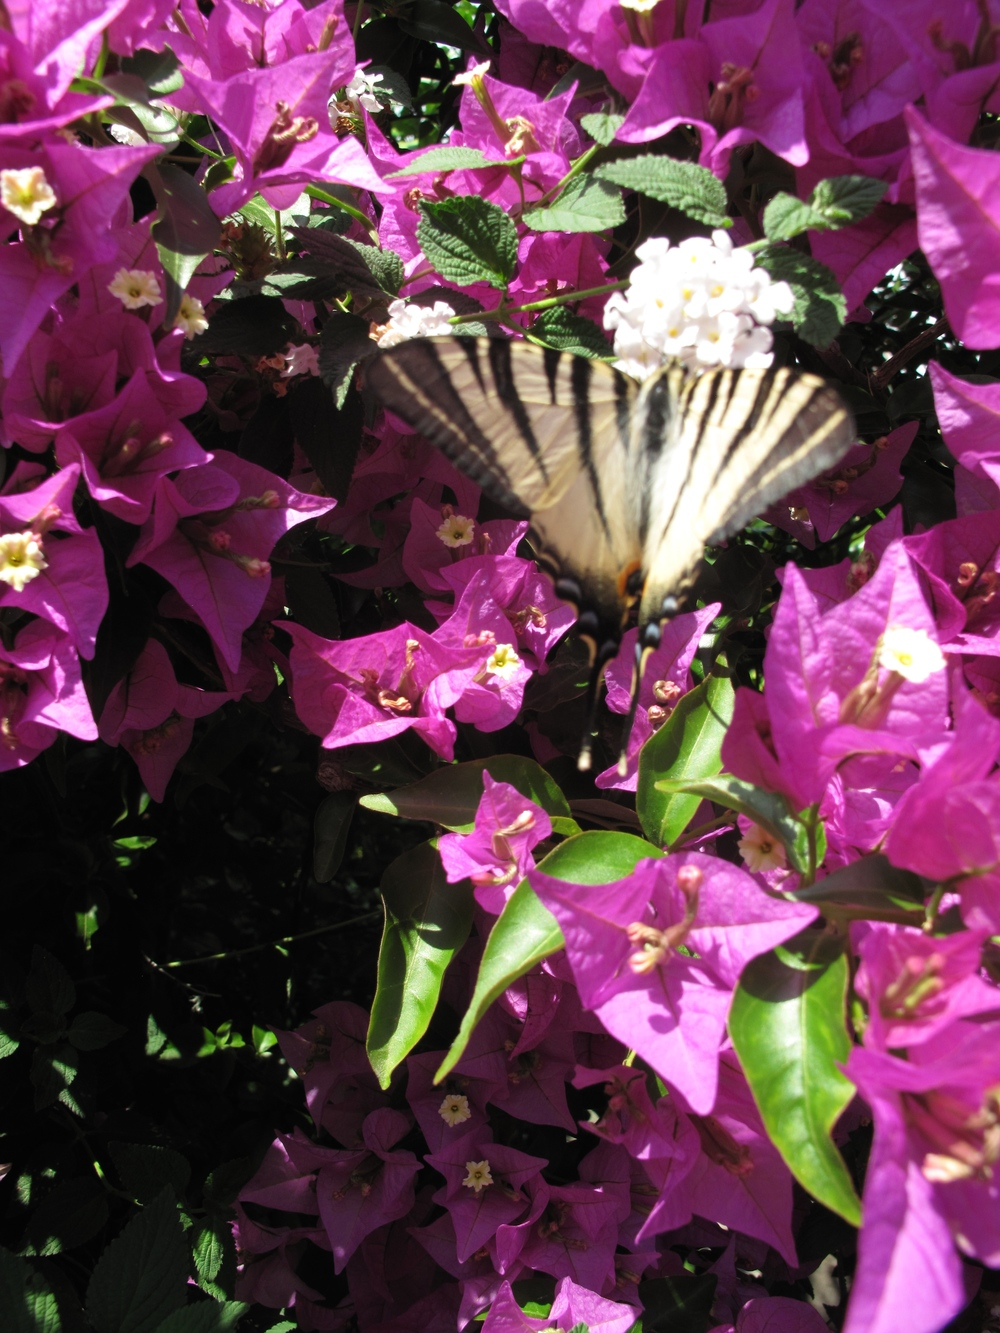 Purple flowers and a white and black butterfly